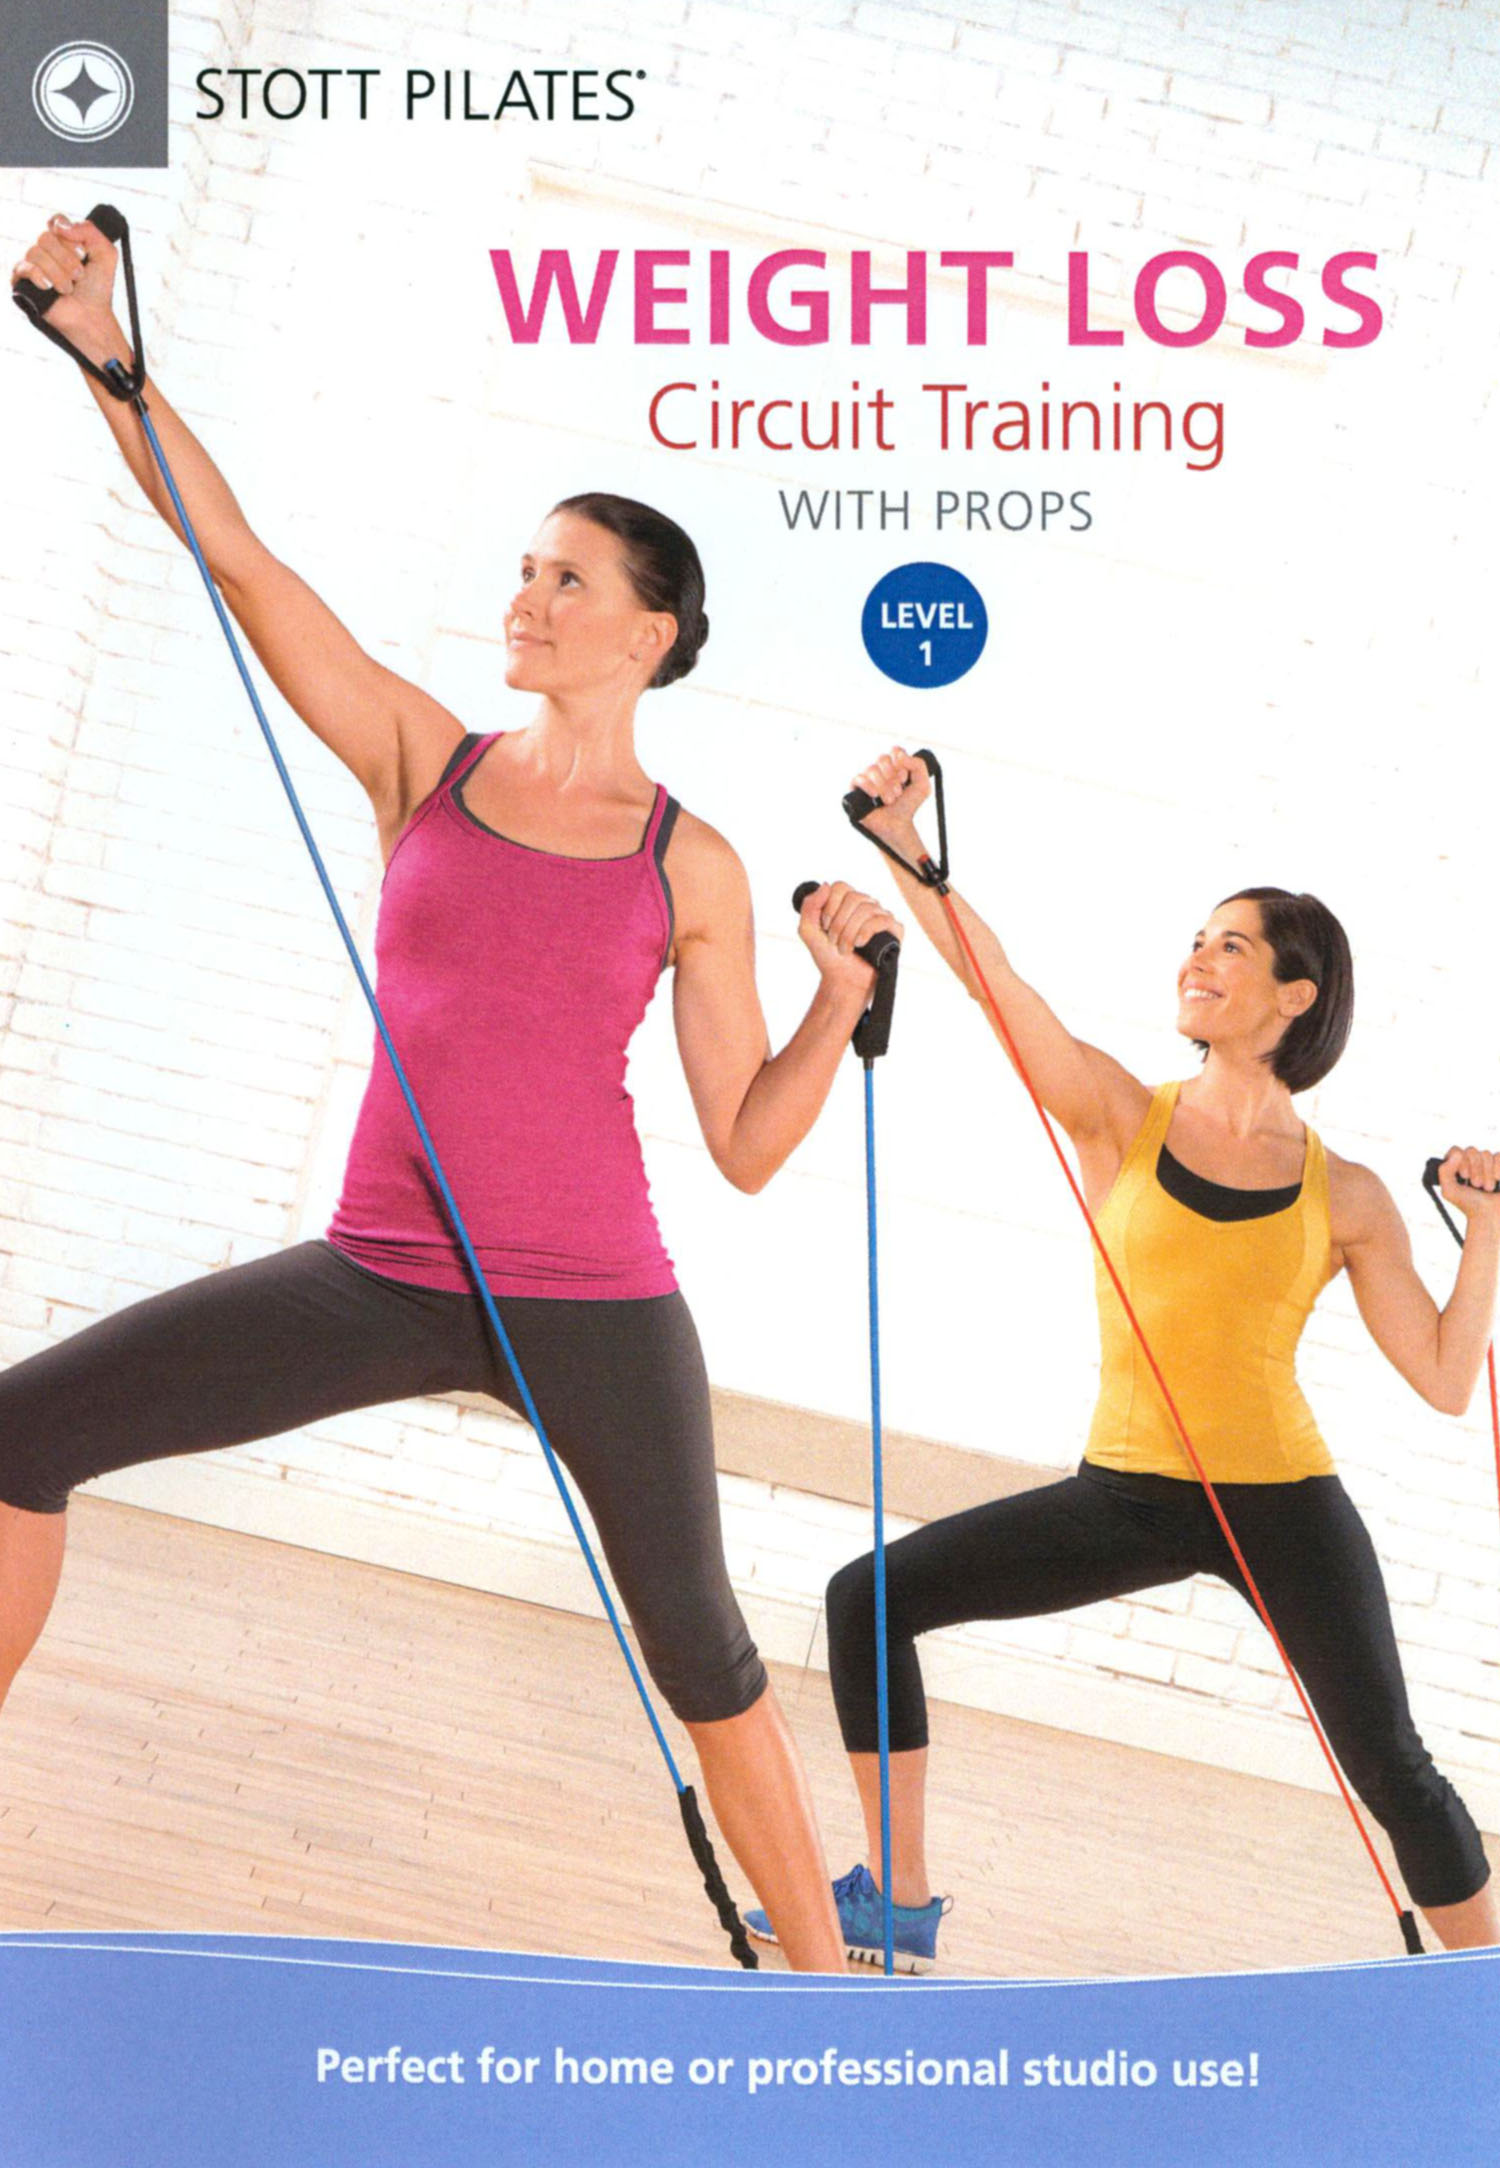 Stott Pilates: Weight Loss Circuit Training with Props - Level 1